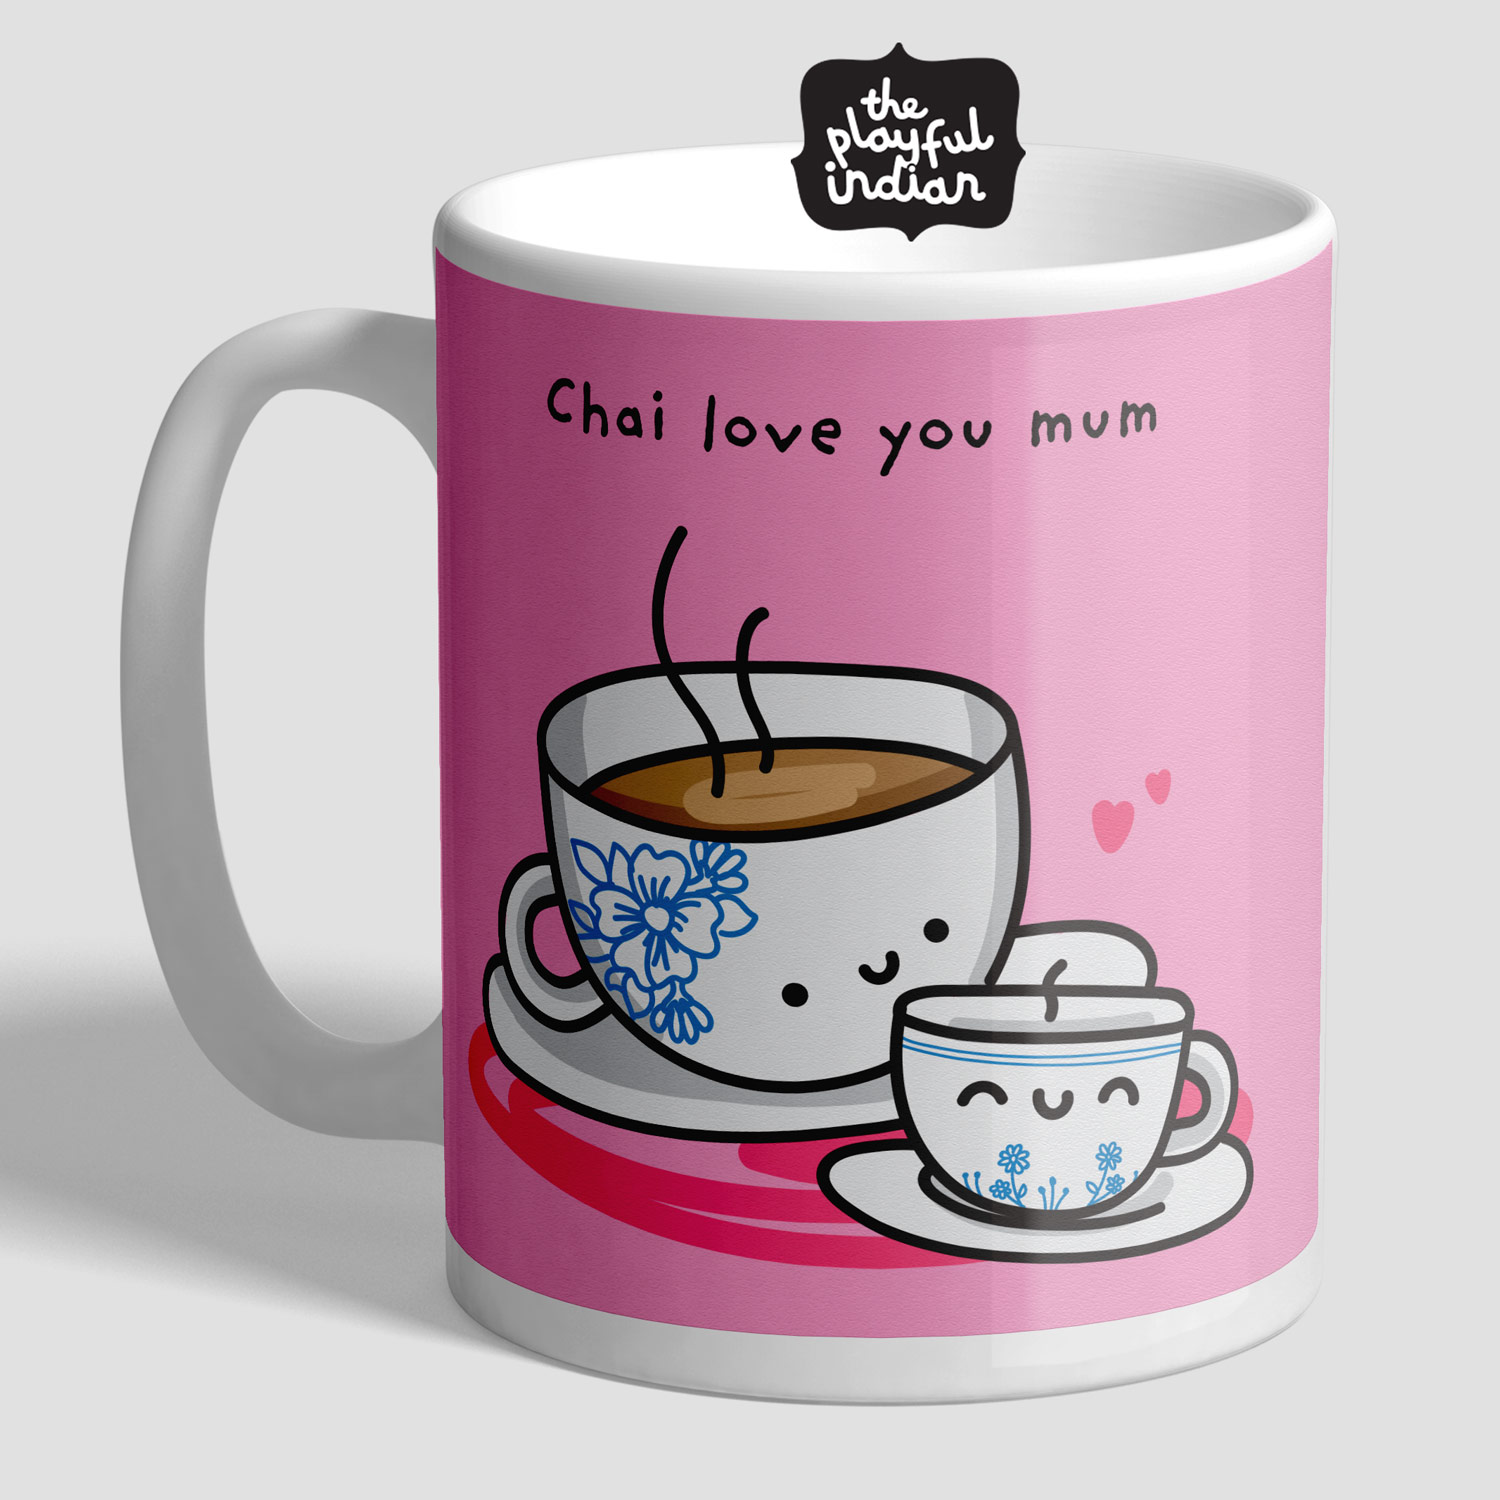 chai love you mum mug